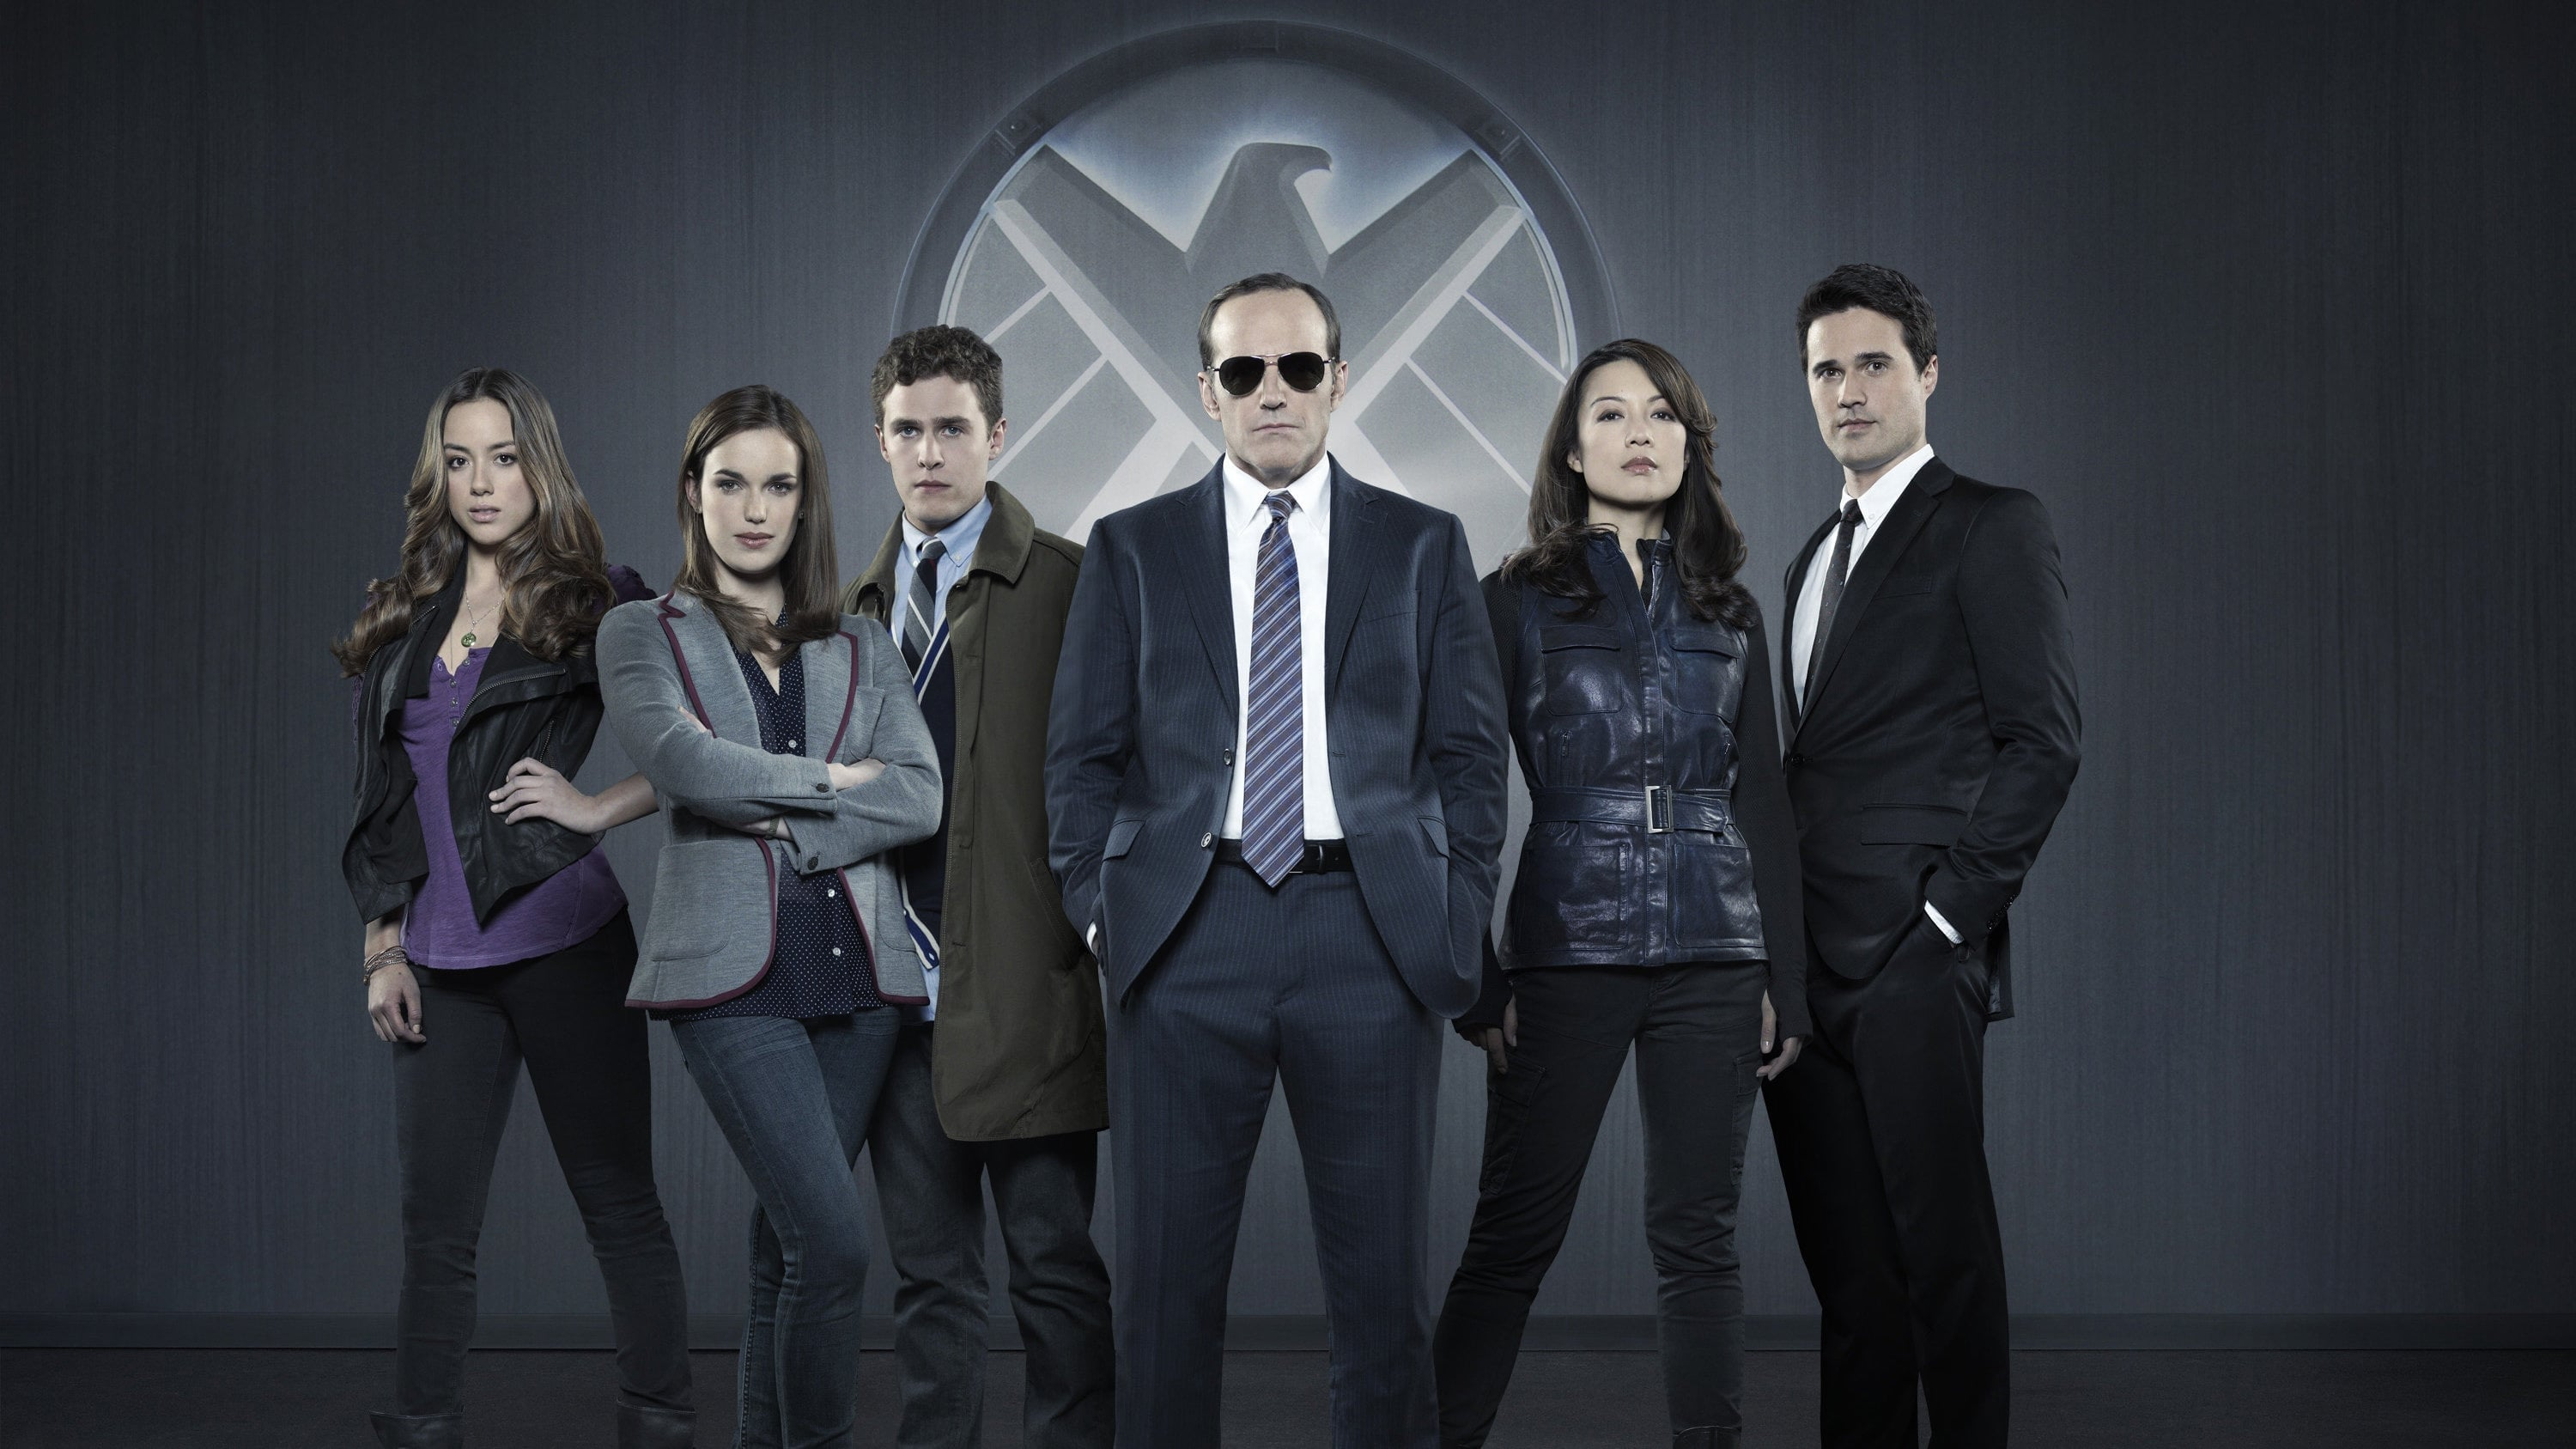 Marvel's Agents of S.H.I.E.L.D. - Season 0 Episode 6 : Double Agent: Post Heist